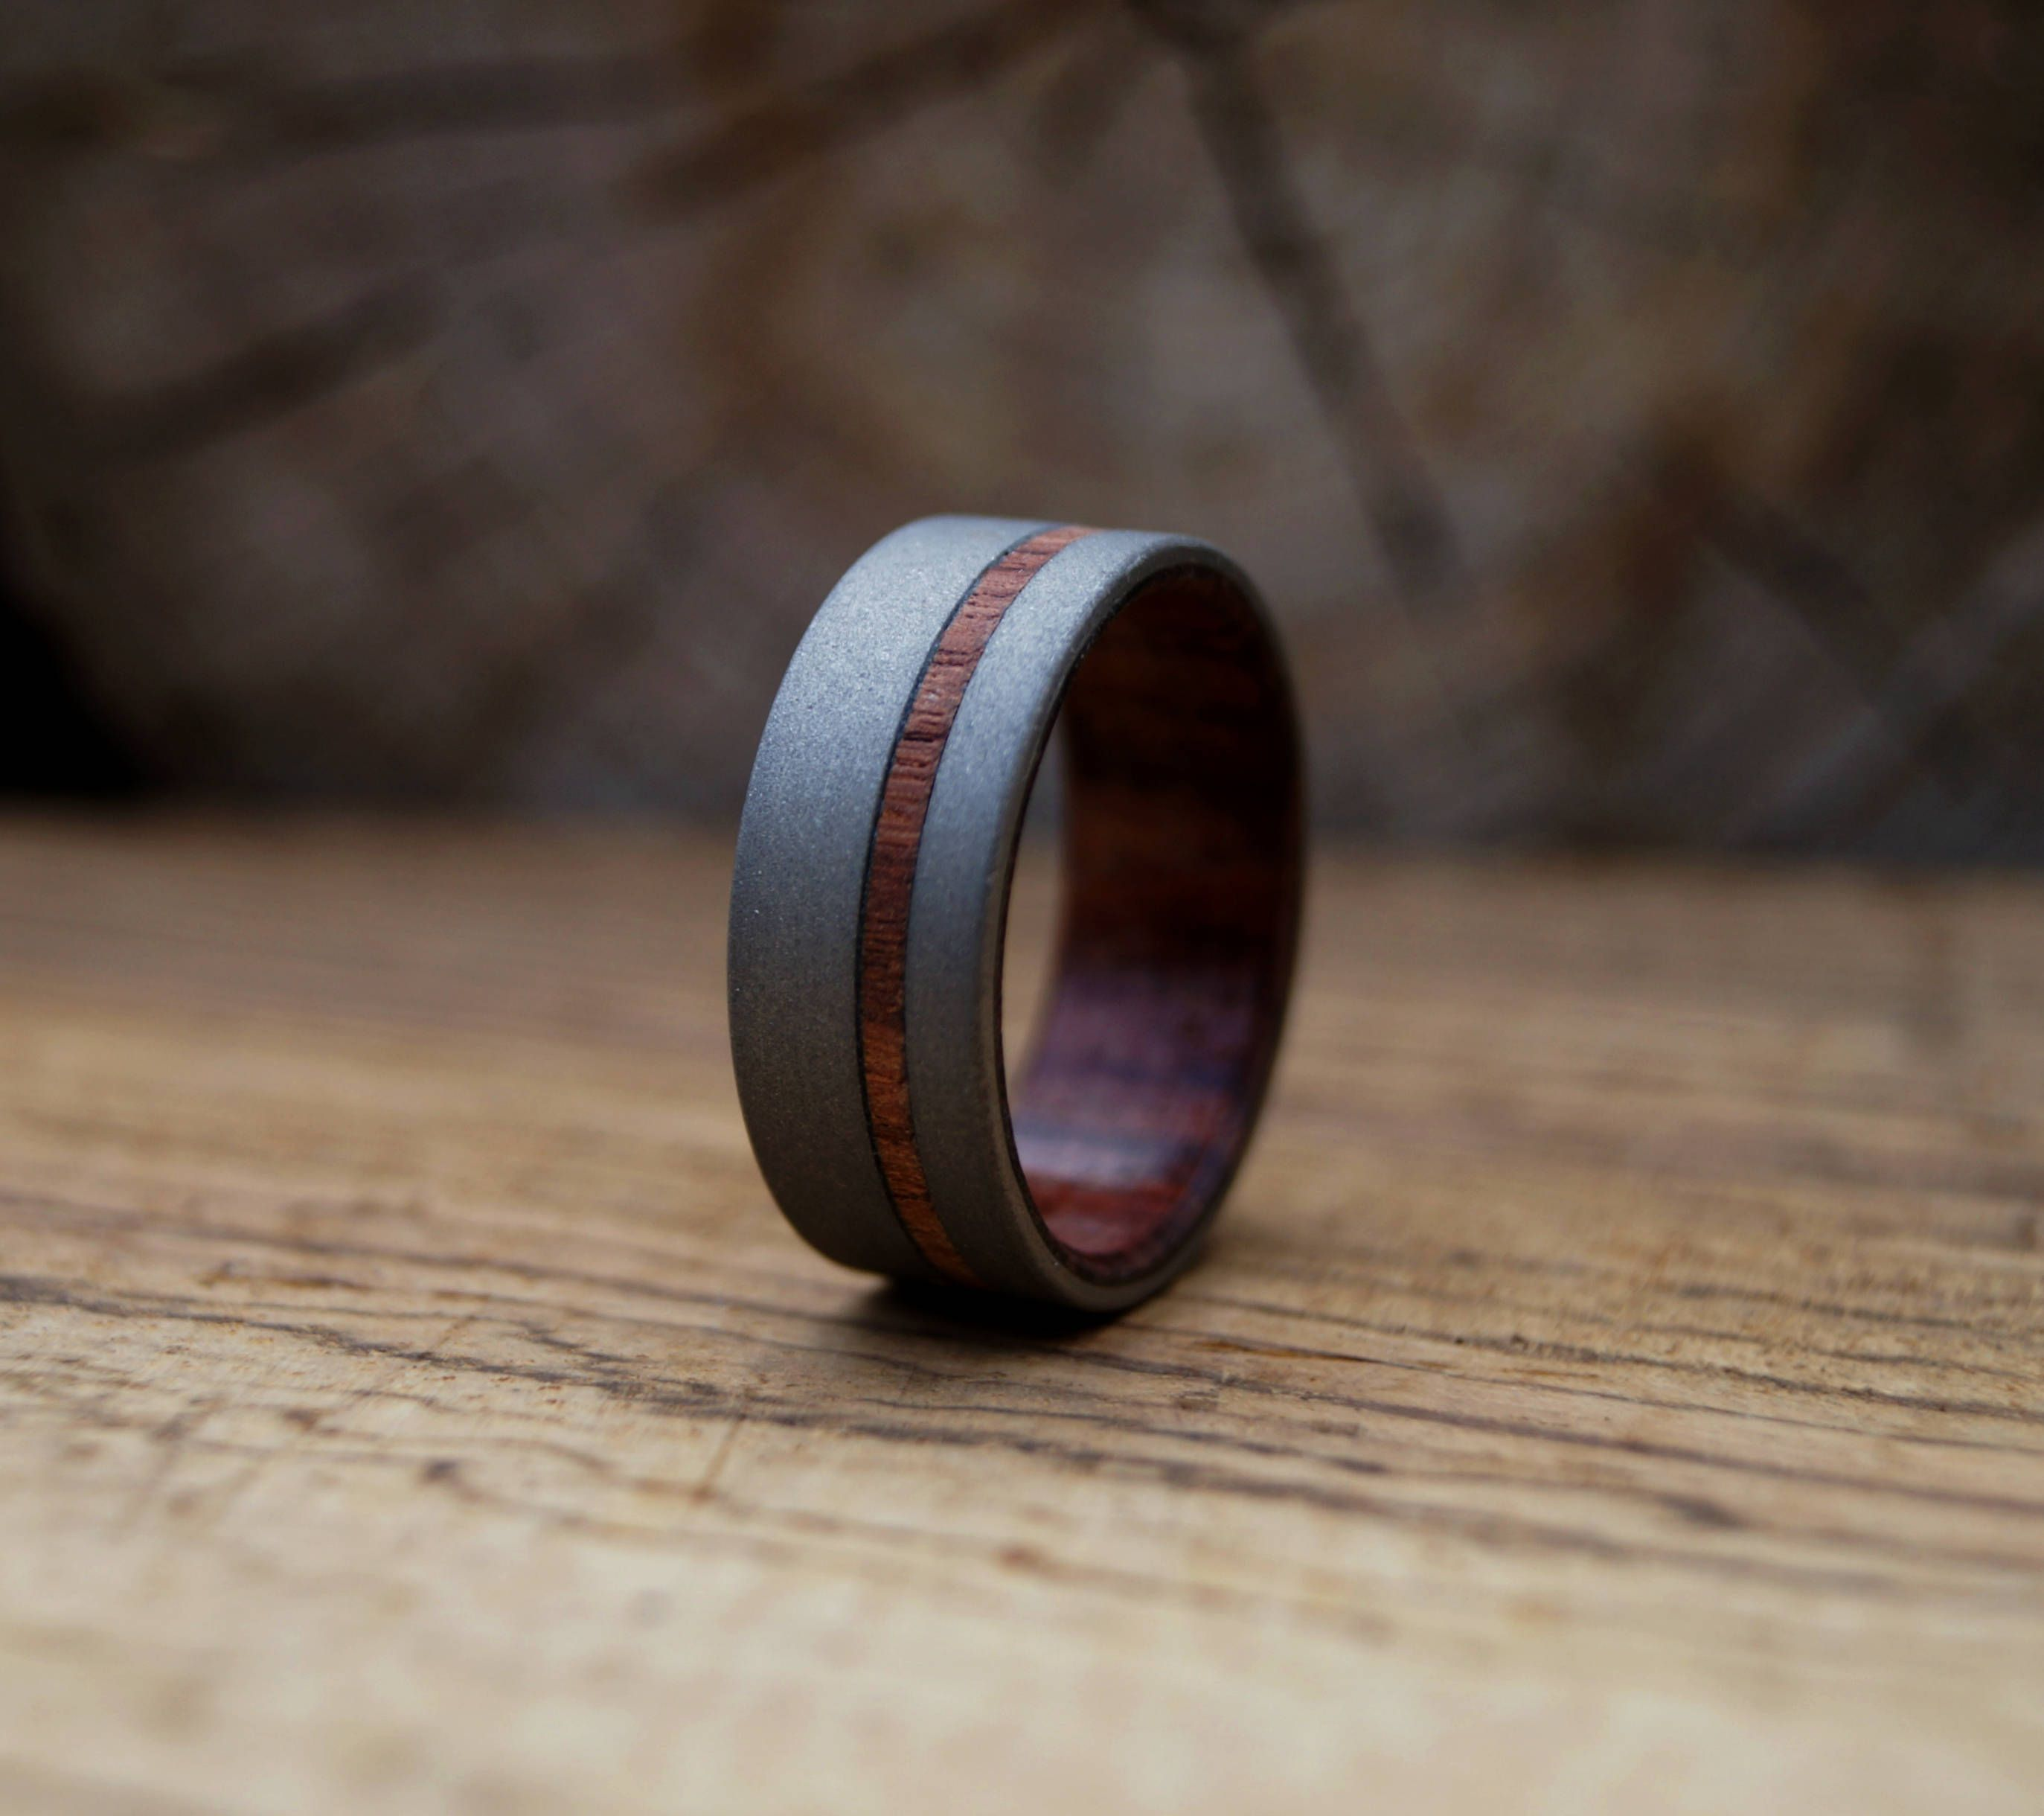 Sand Blasted Stainless Steel Ring With King Wood Inlay Titanium Wedding Rings Stainless Steel Rings Mens Wedding Rings